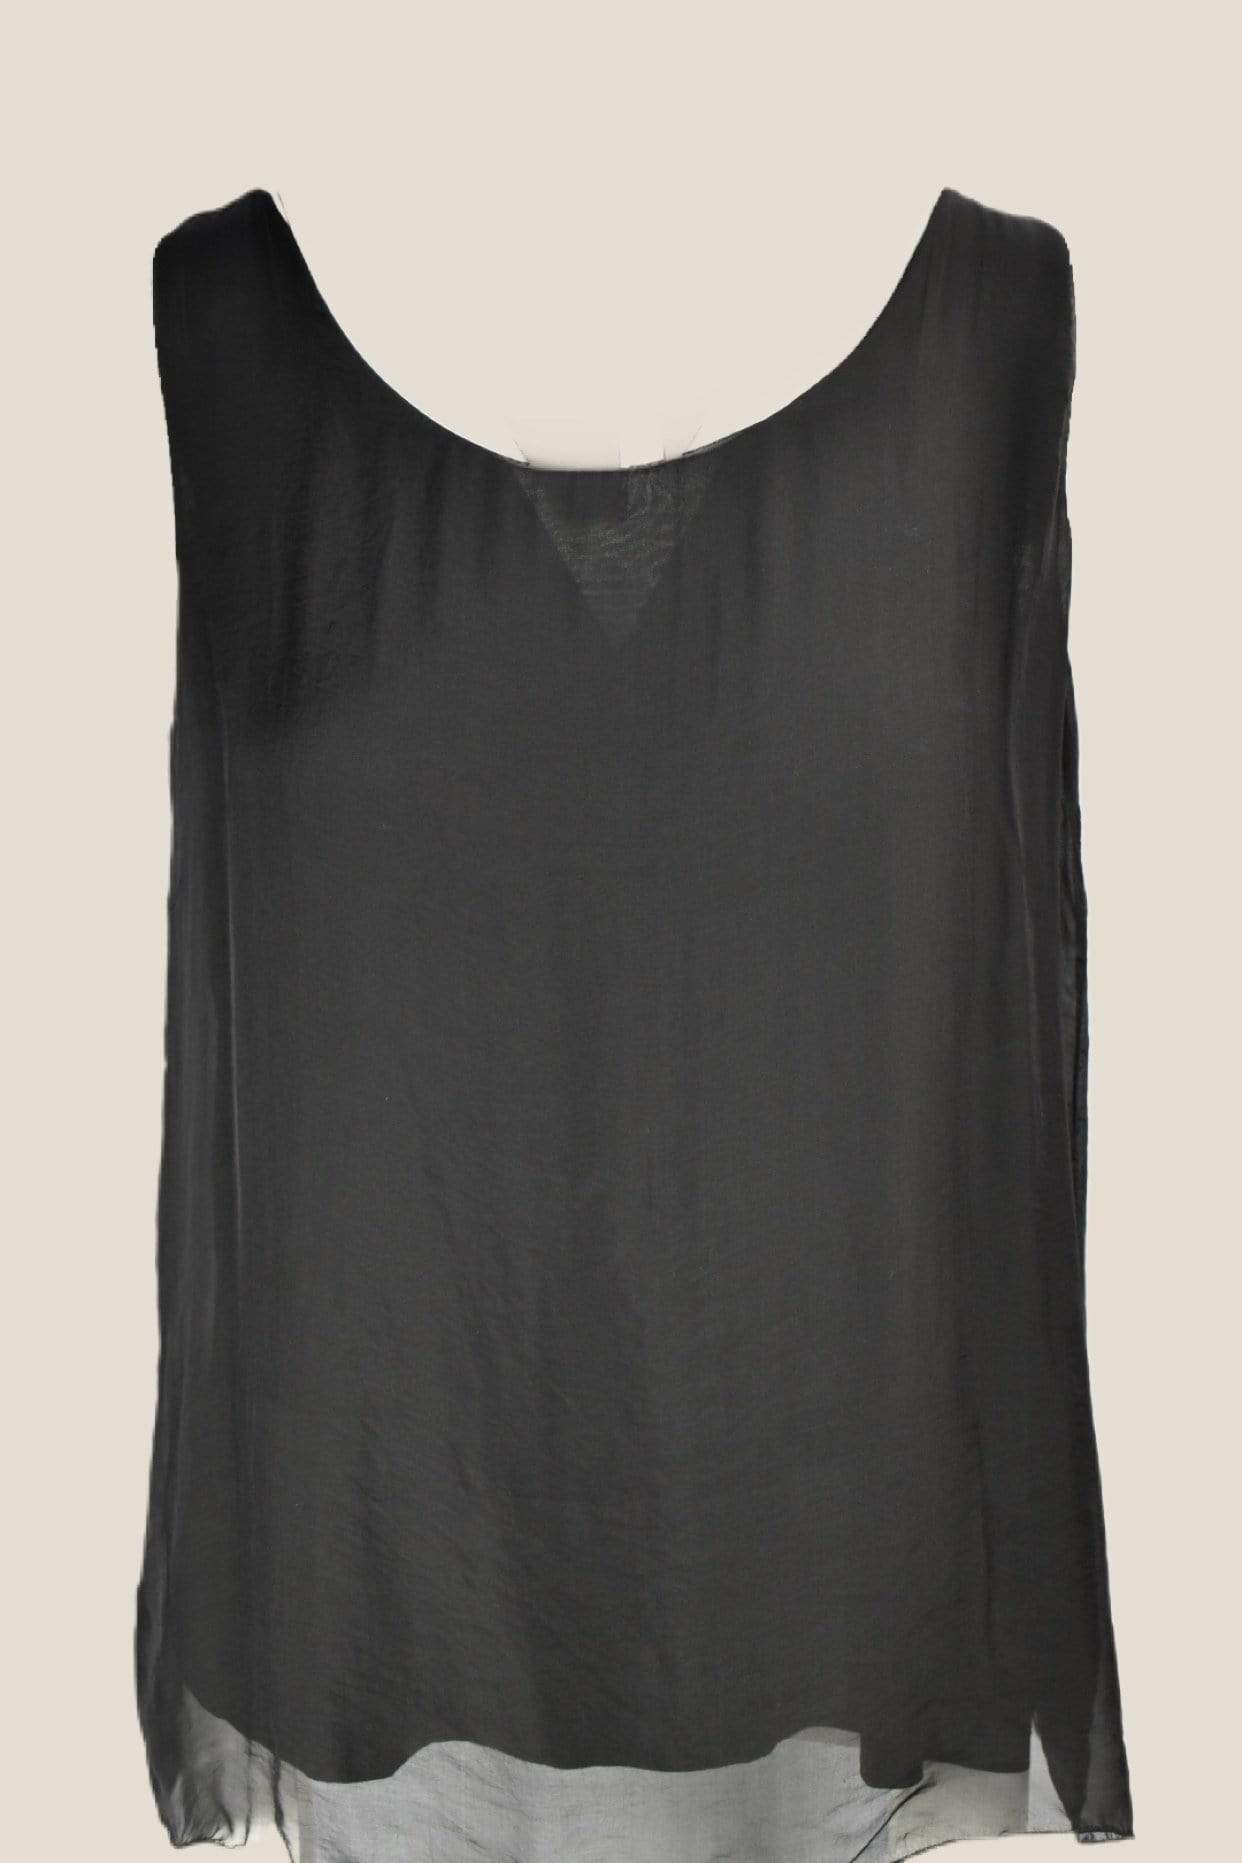 Ginger Threads Collections tank top Black Sleeveless Silk Tank